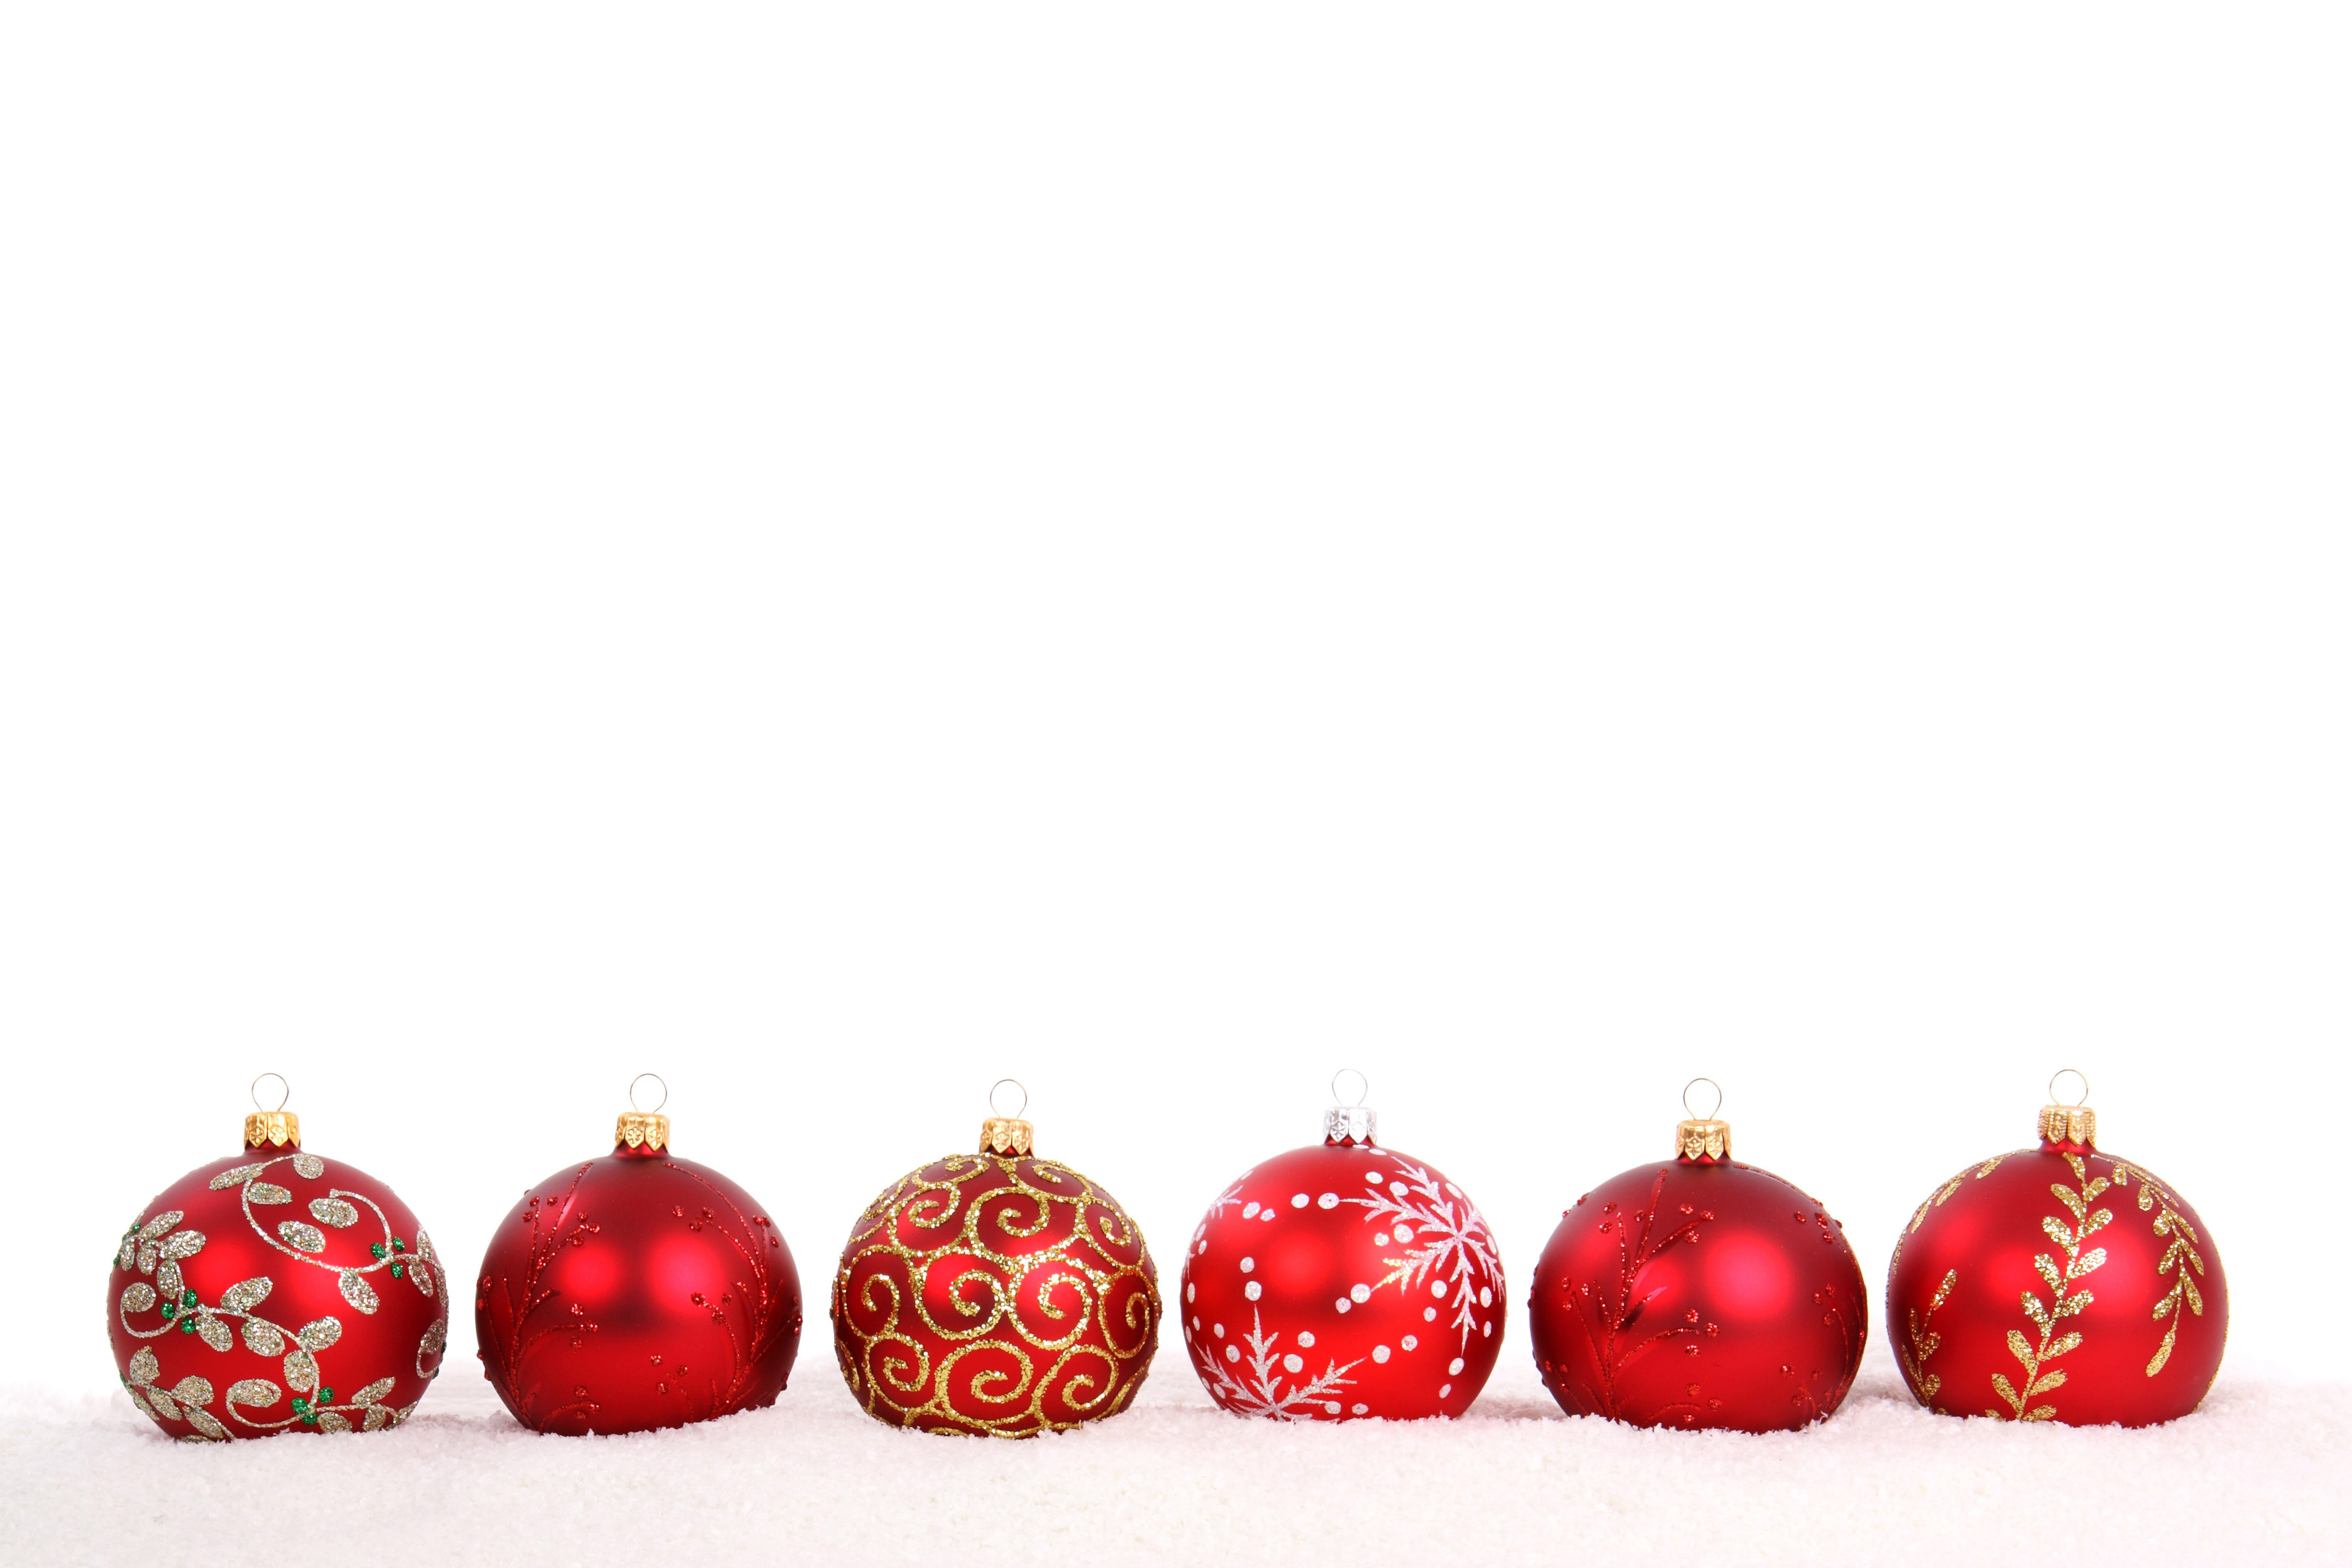 Assorted Christmas Ornaments On A White Background Www Row Of Balls ...